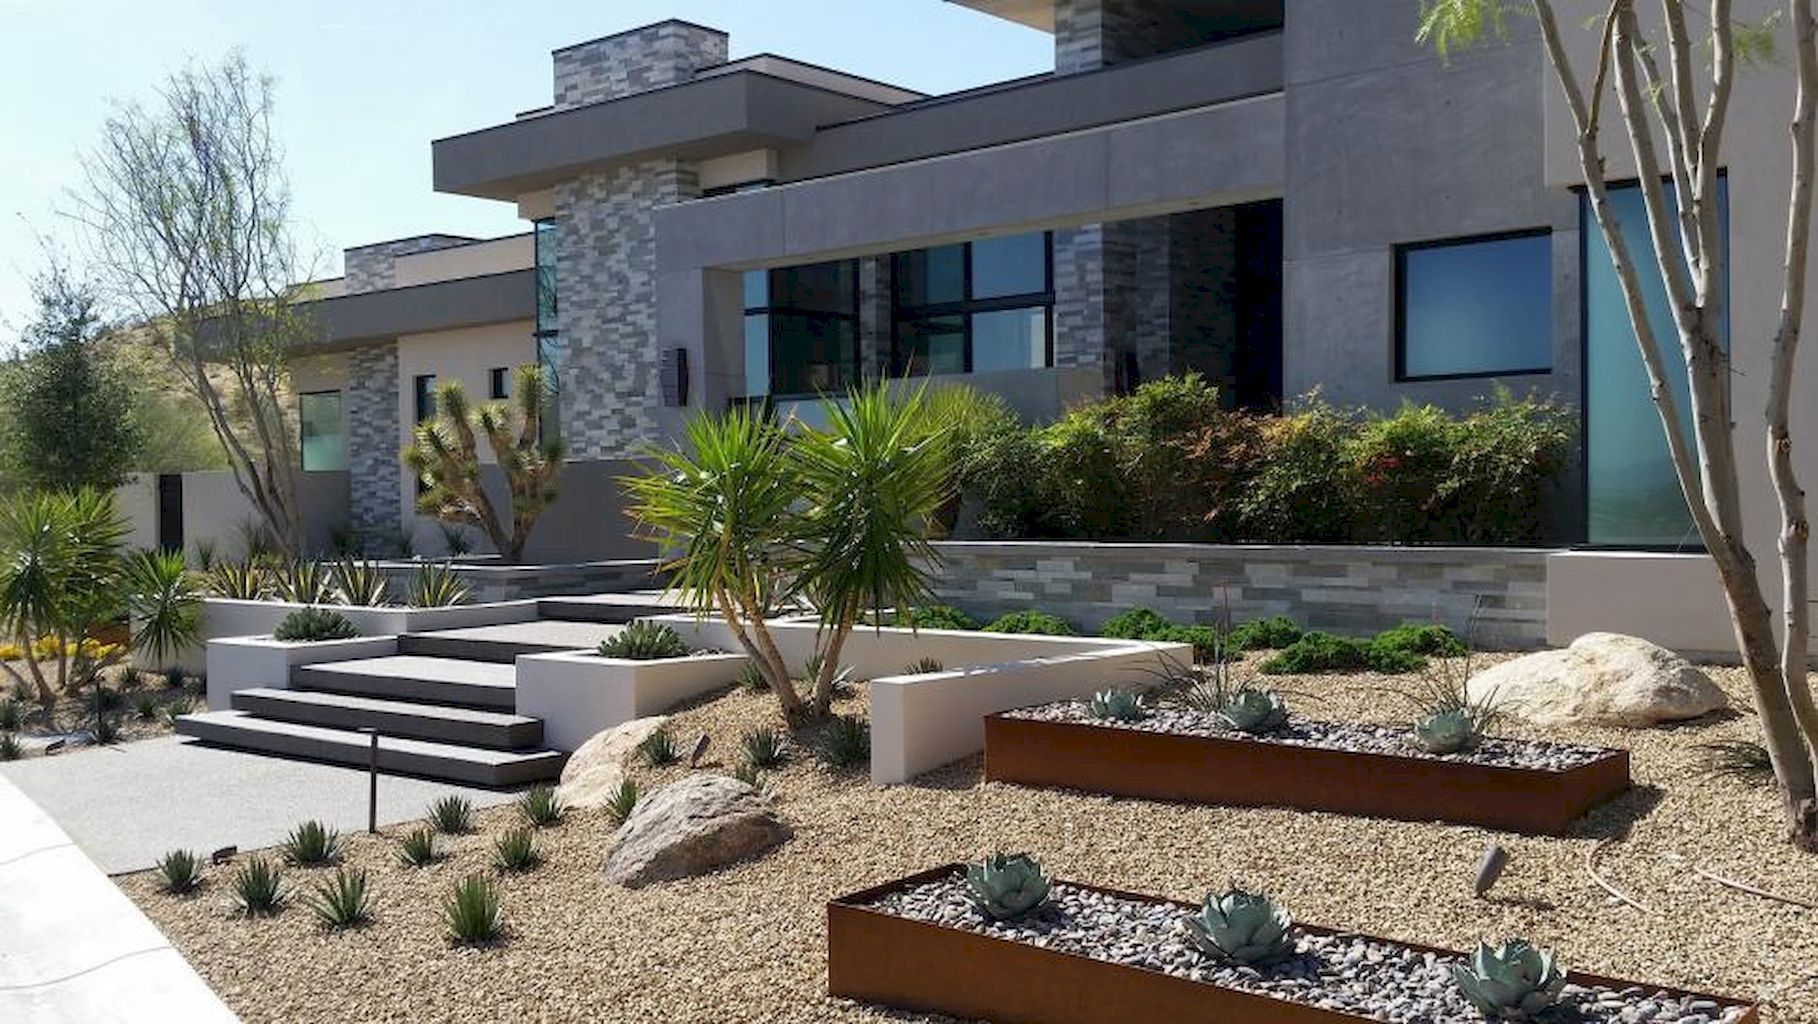 Simple Low Maintenance Front Yard Landscaping Ideas 31 Modern Landscaping Modern Front Yard Front Yard Landscaping Design